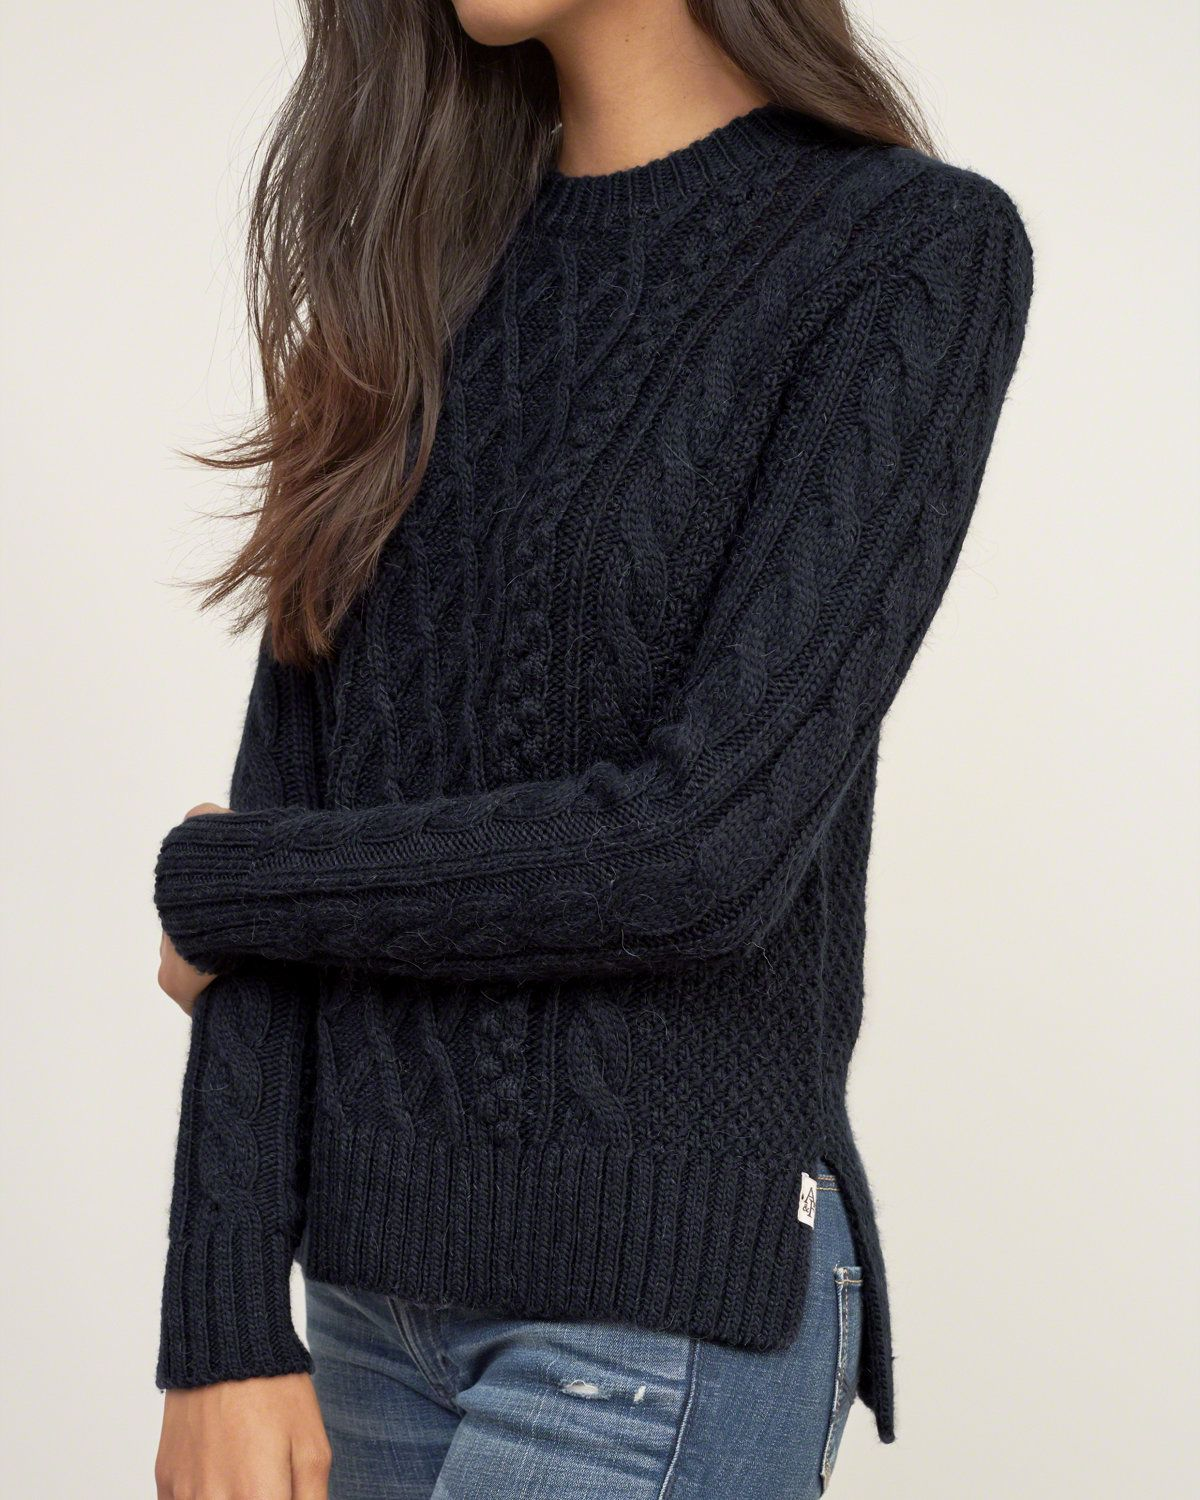 Linen Blend Cardigan | Cable knitting, Pullover and Cable